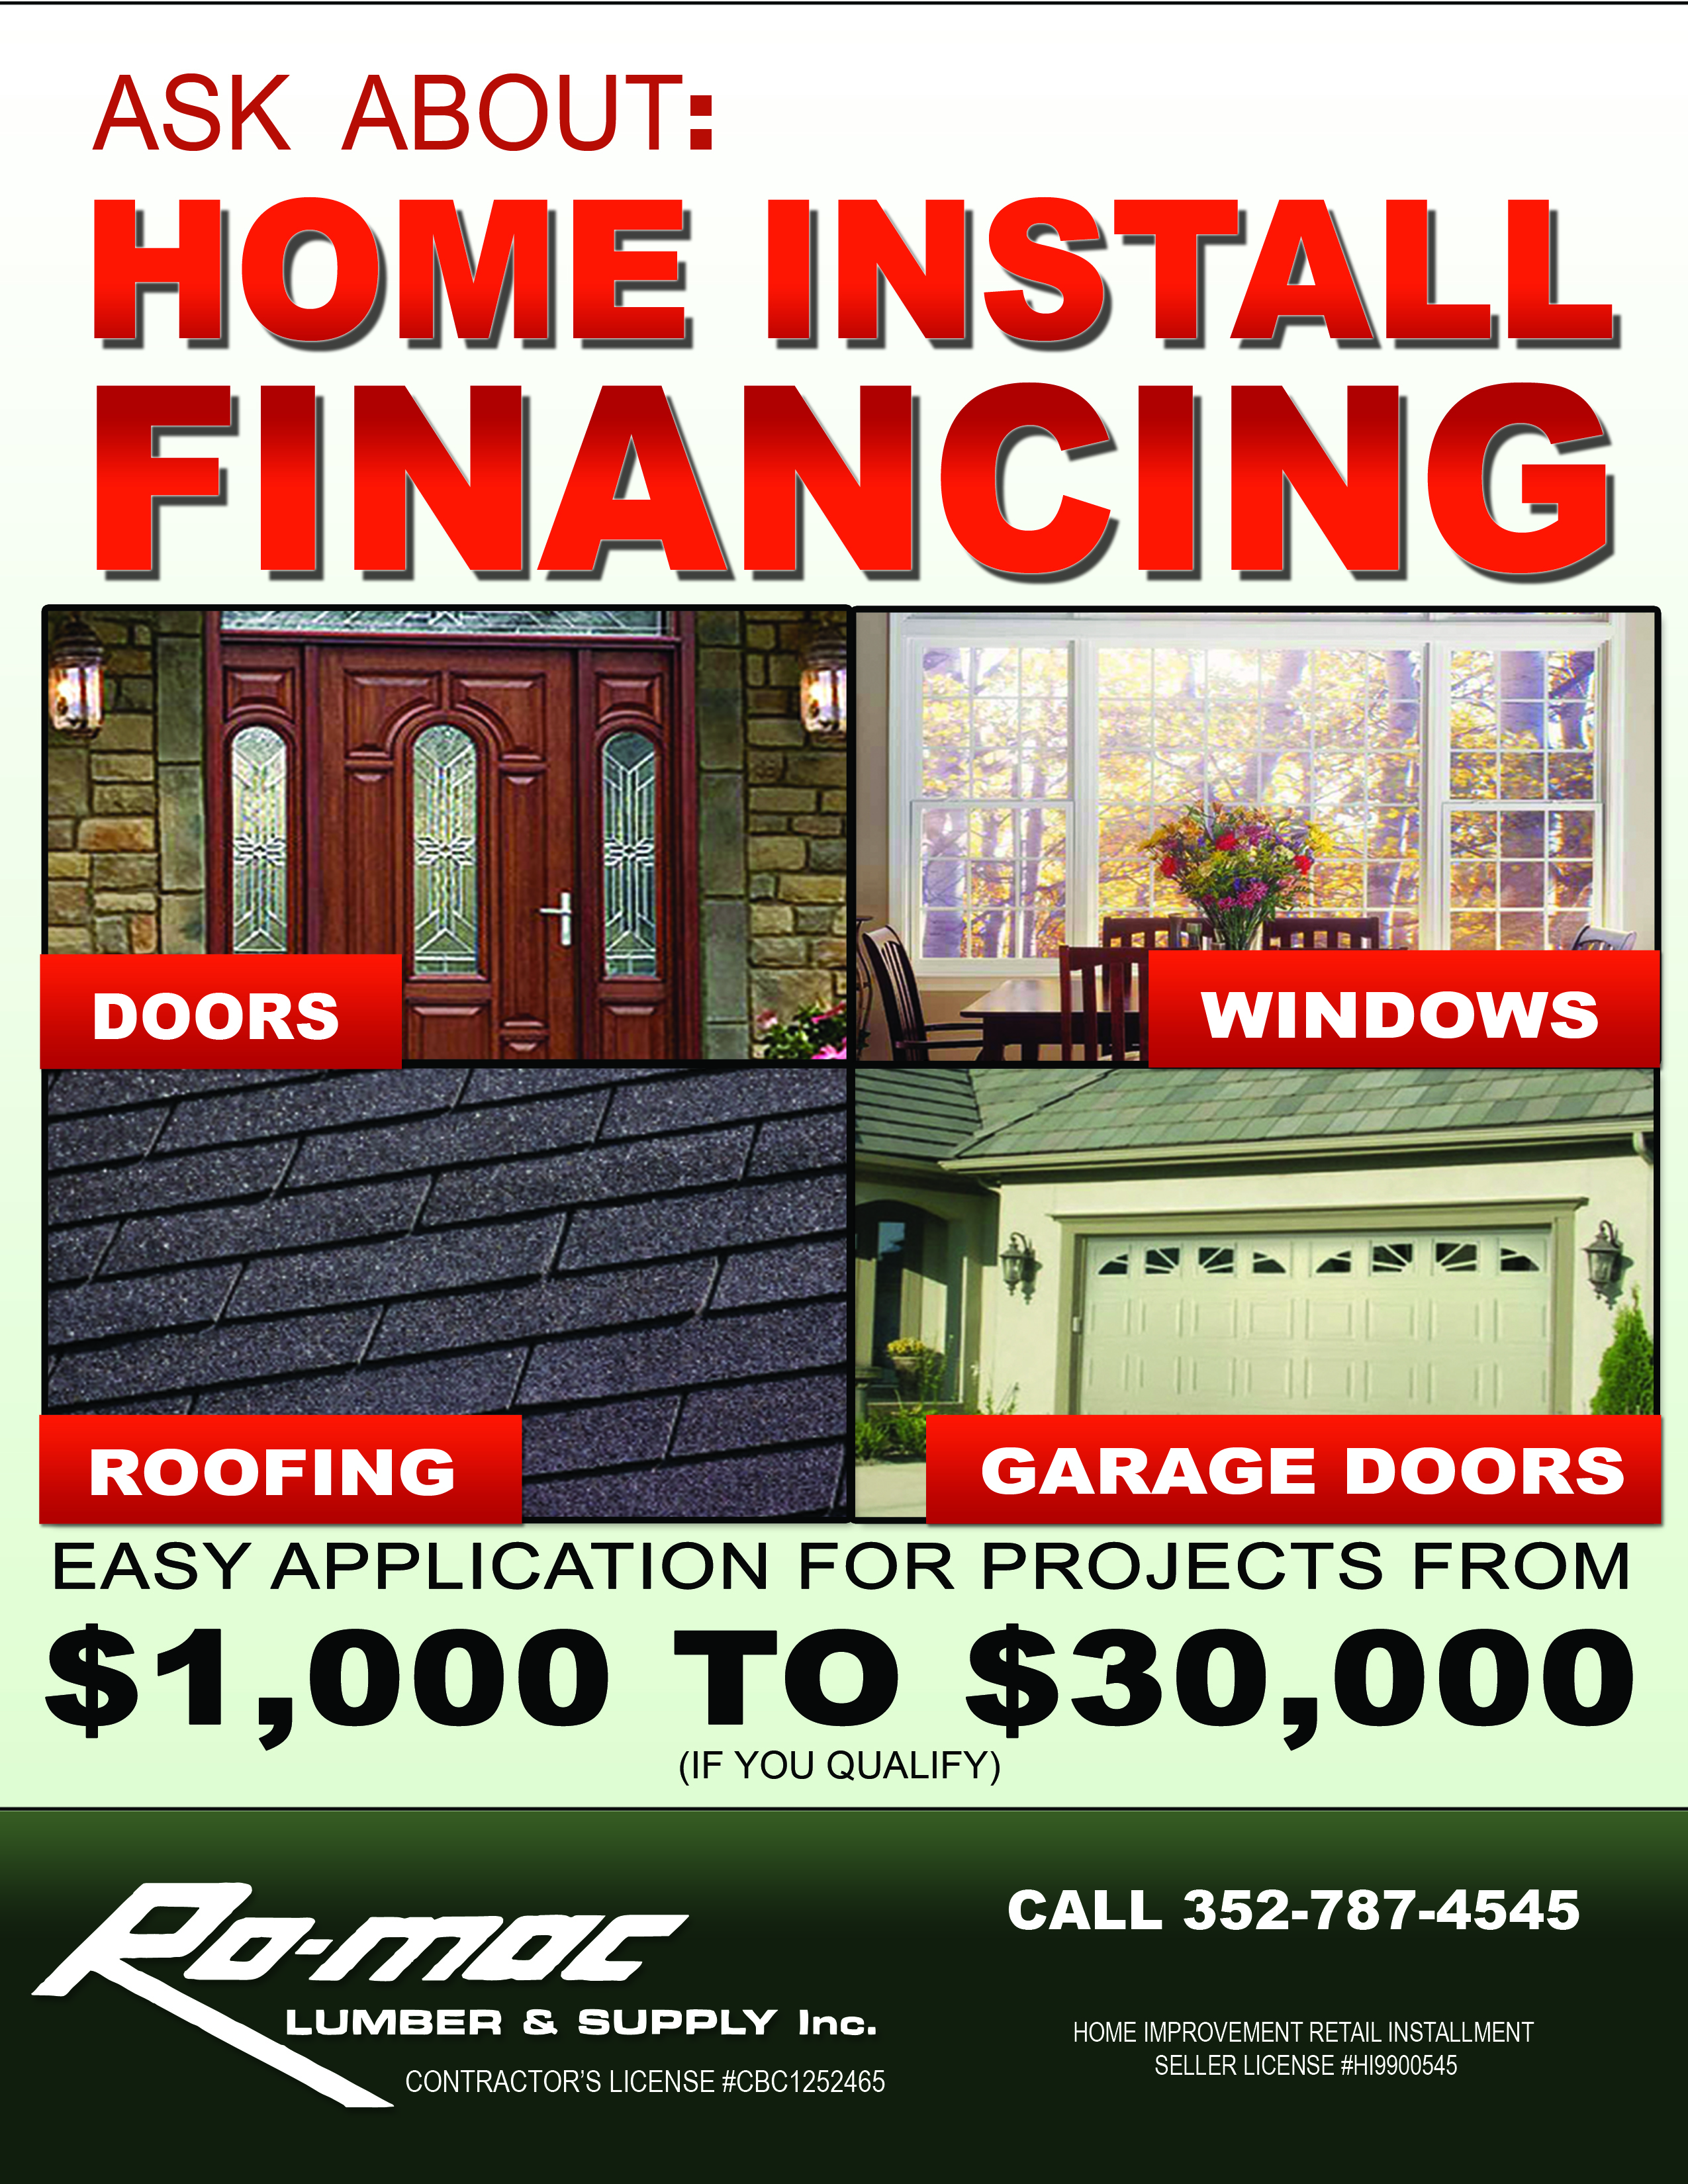 Home Install Financing